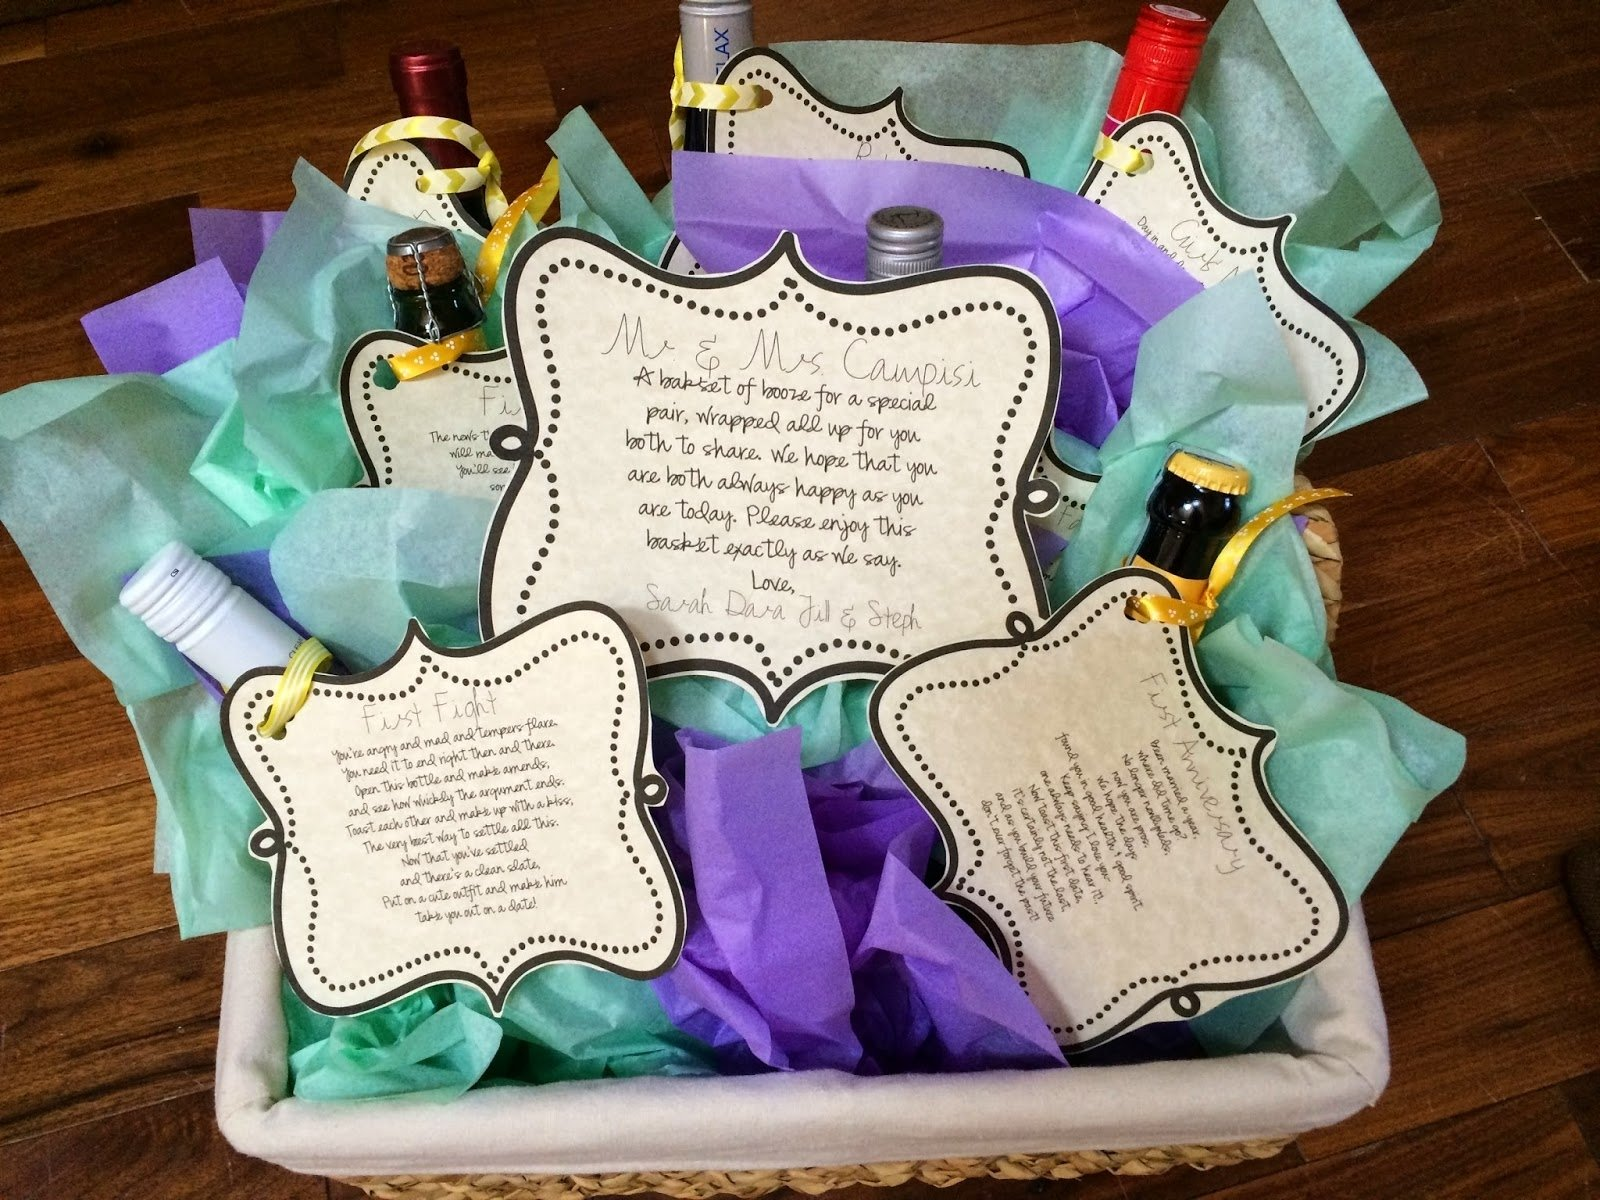 10 Lovely Stock The Bar Gift Ideas shower the people you love with love the eager teacher 2021